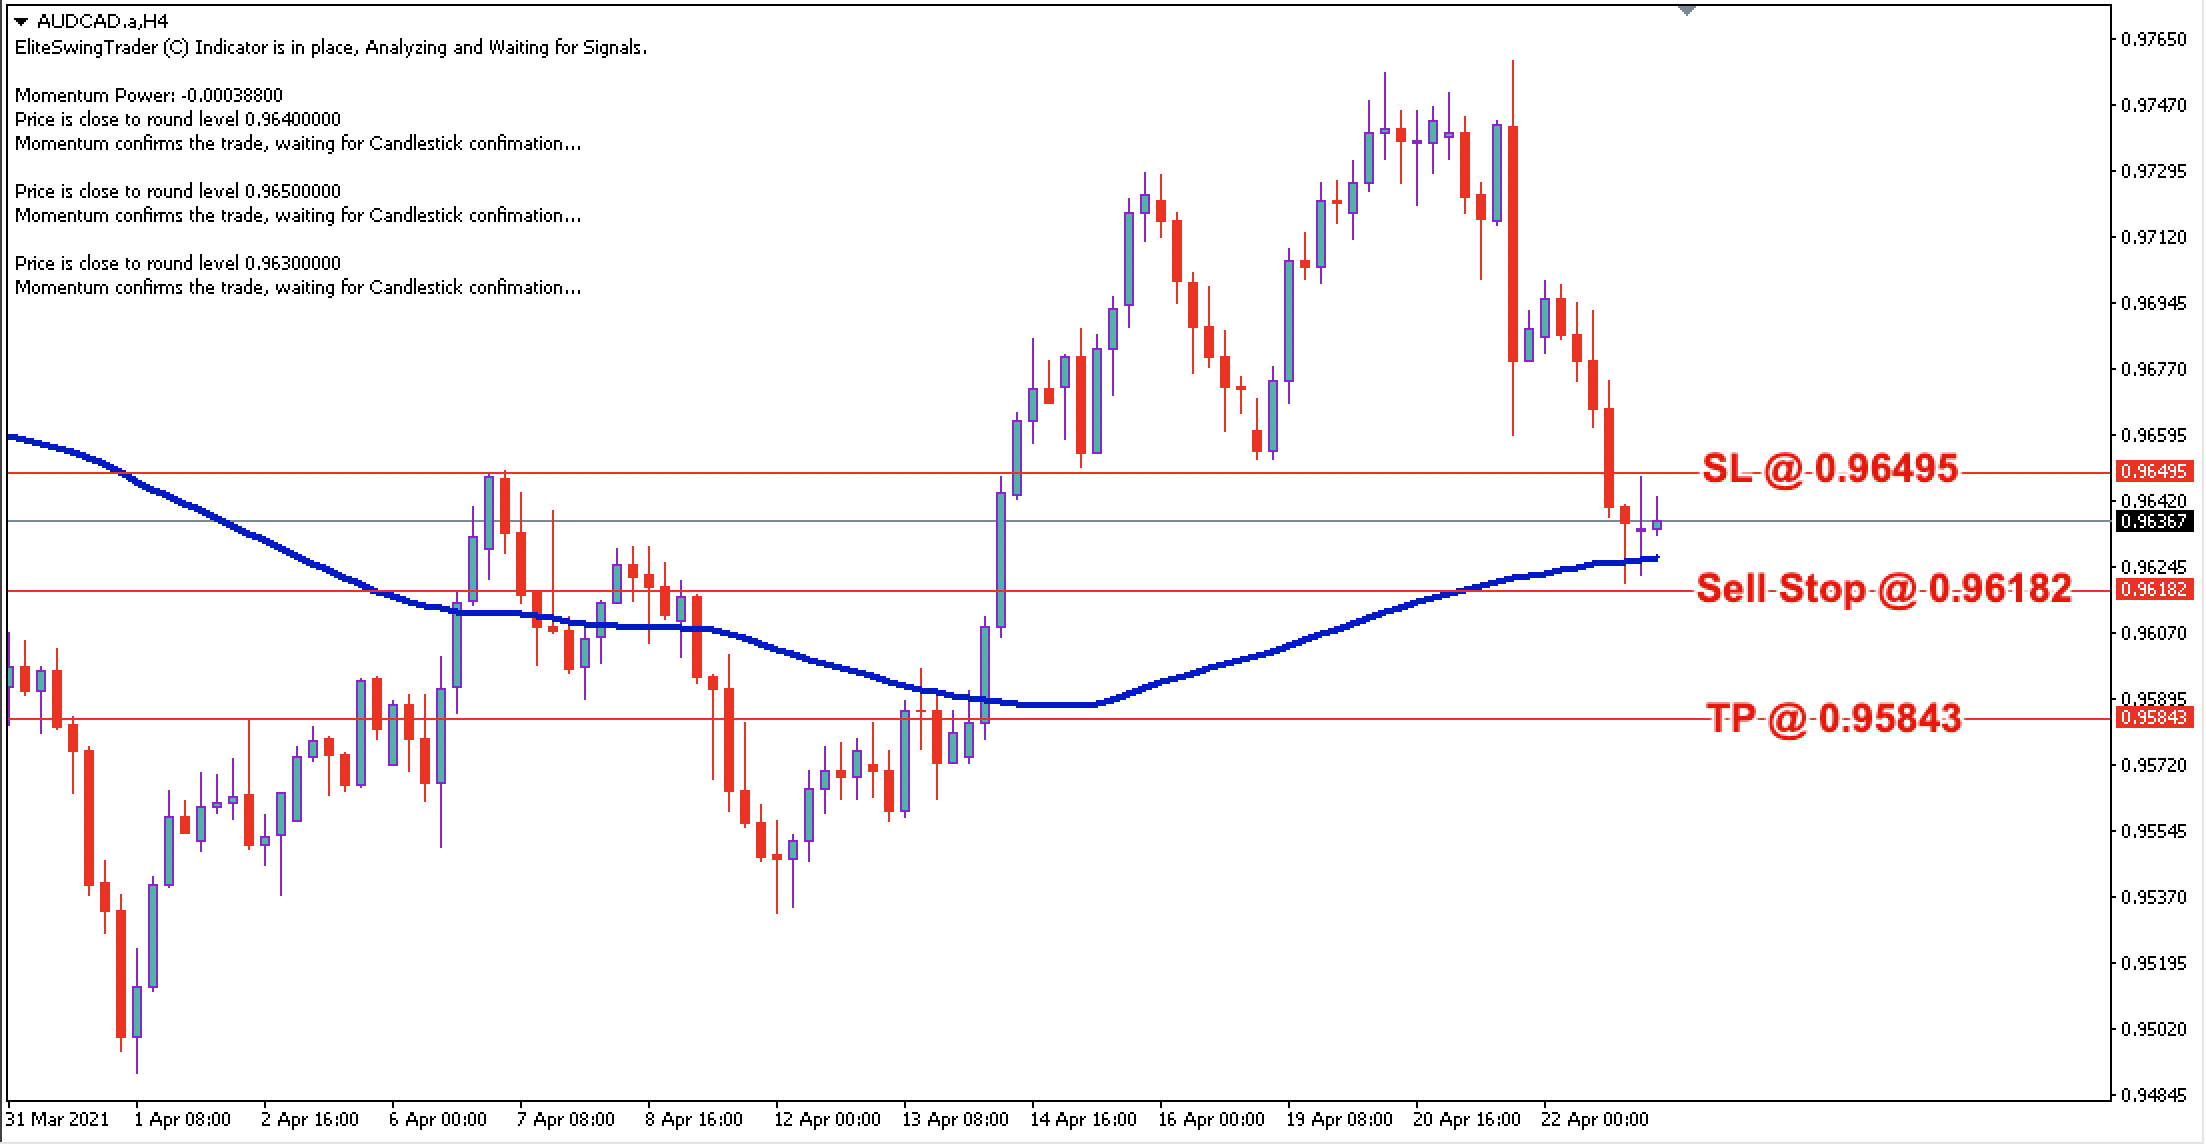 AUD/CAD Daily Price Forecast - 23rd April 2021